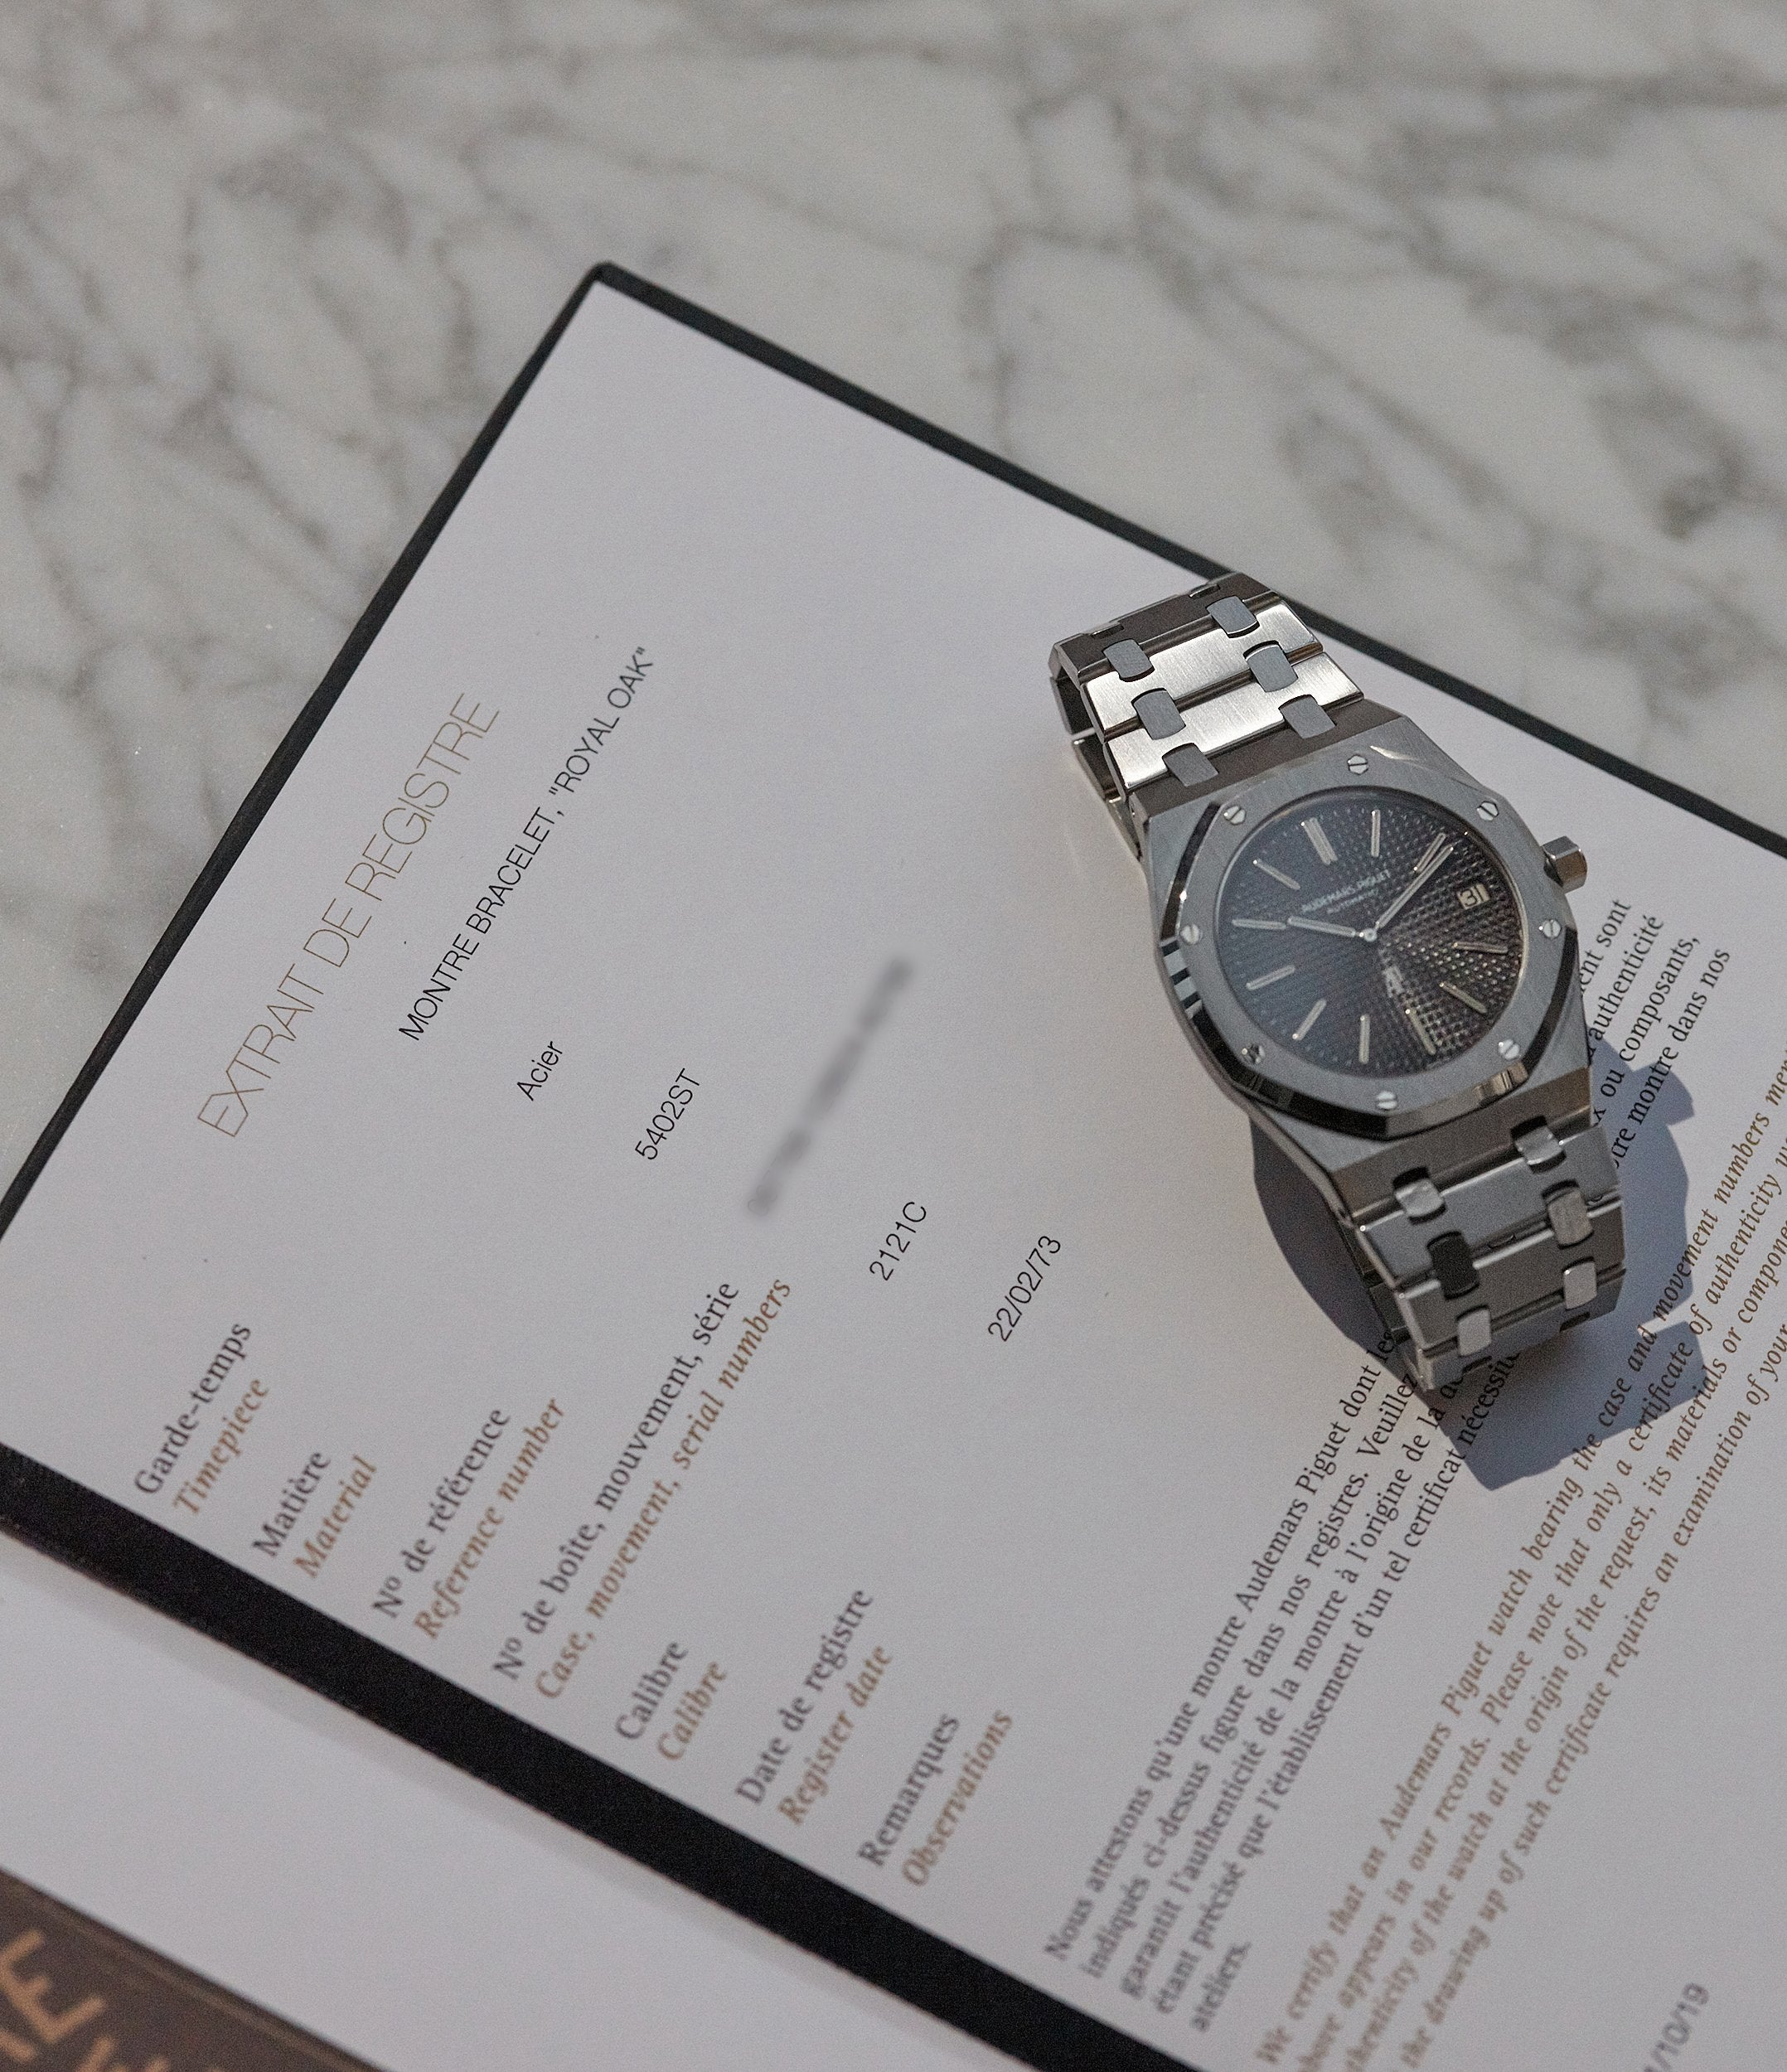 Archive Extracts Audemars Piguet Royal Oak early A-series steel 5402A steel sports luxury watch for sale online A Collected Man London UK specialist rare watches